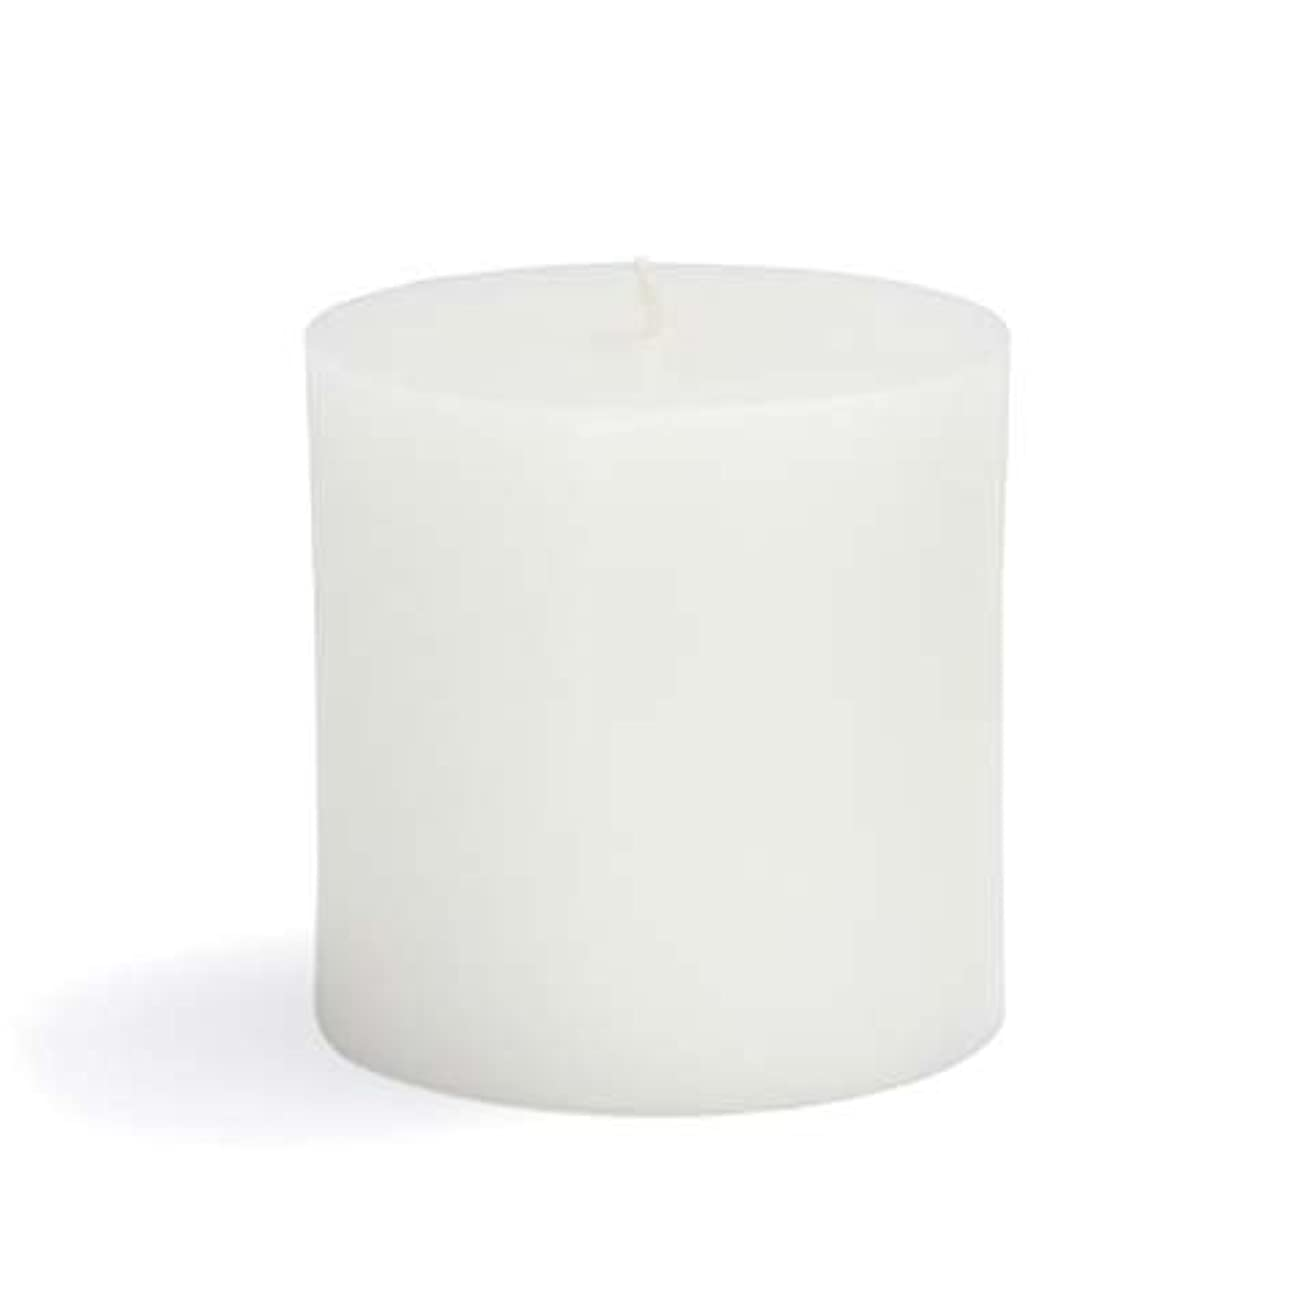 抑制する息を切らして田舎者Zest Candle CPZ-071-12 3 x 3 in. White Pillar Candles -12pcs-Case- Bulk